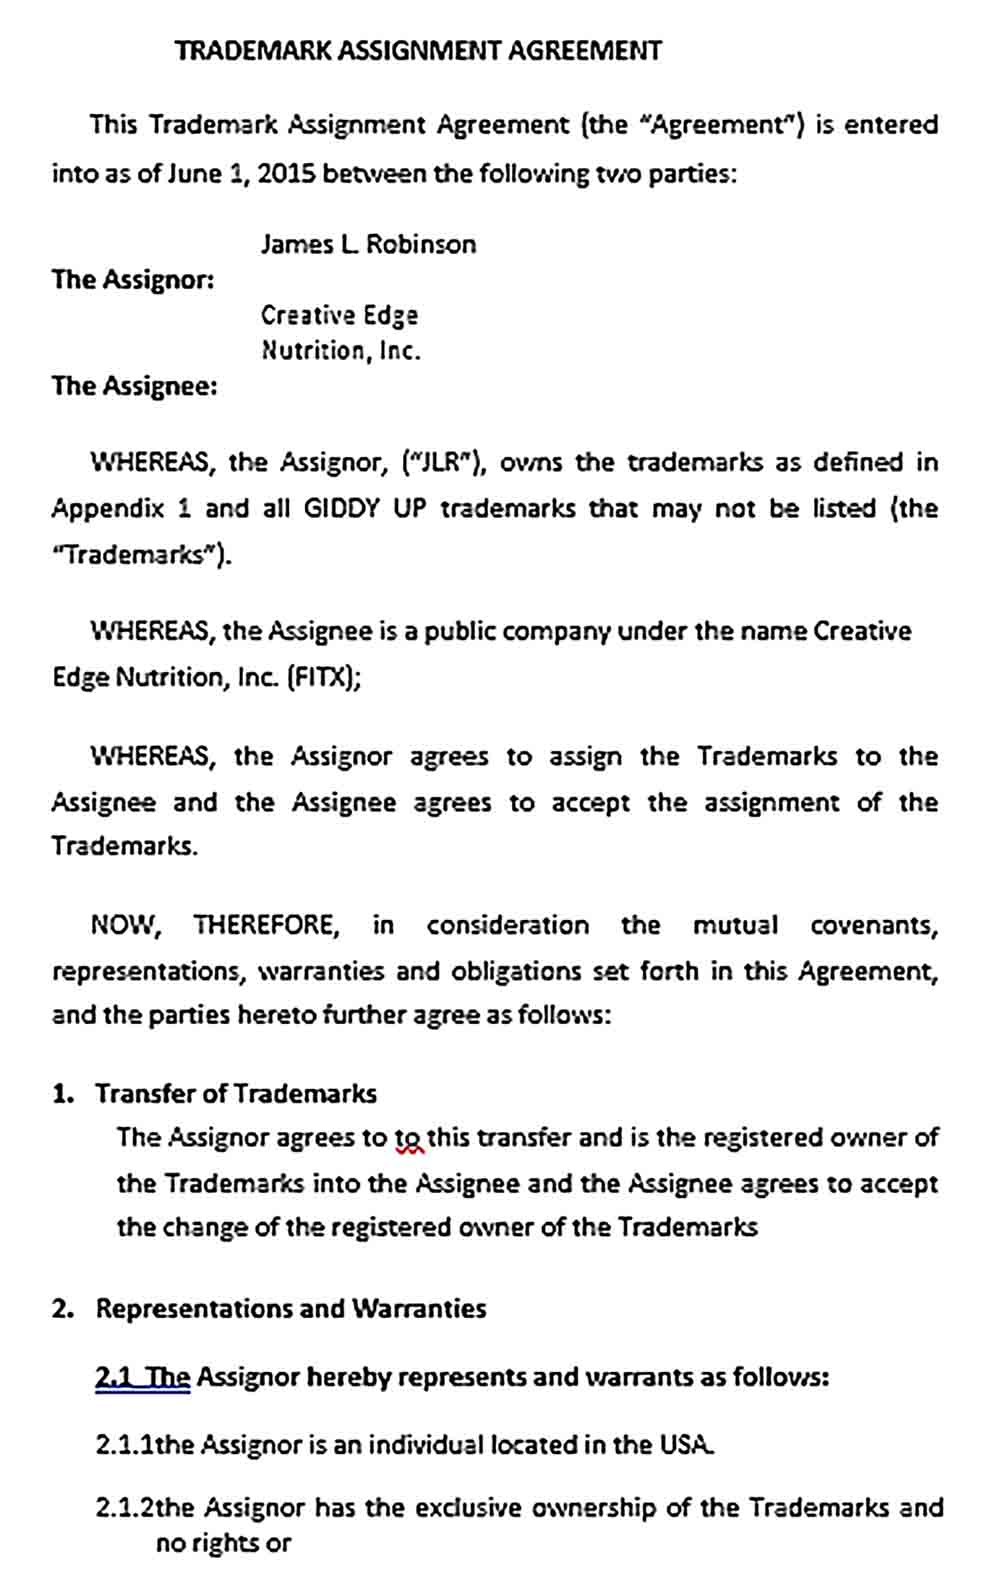 Sample Trademark Assignment Agreement